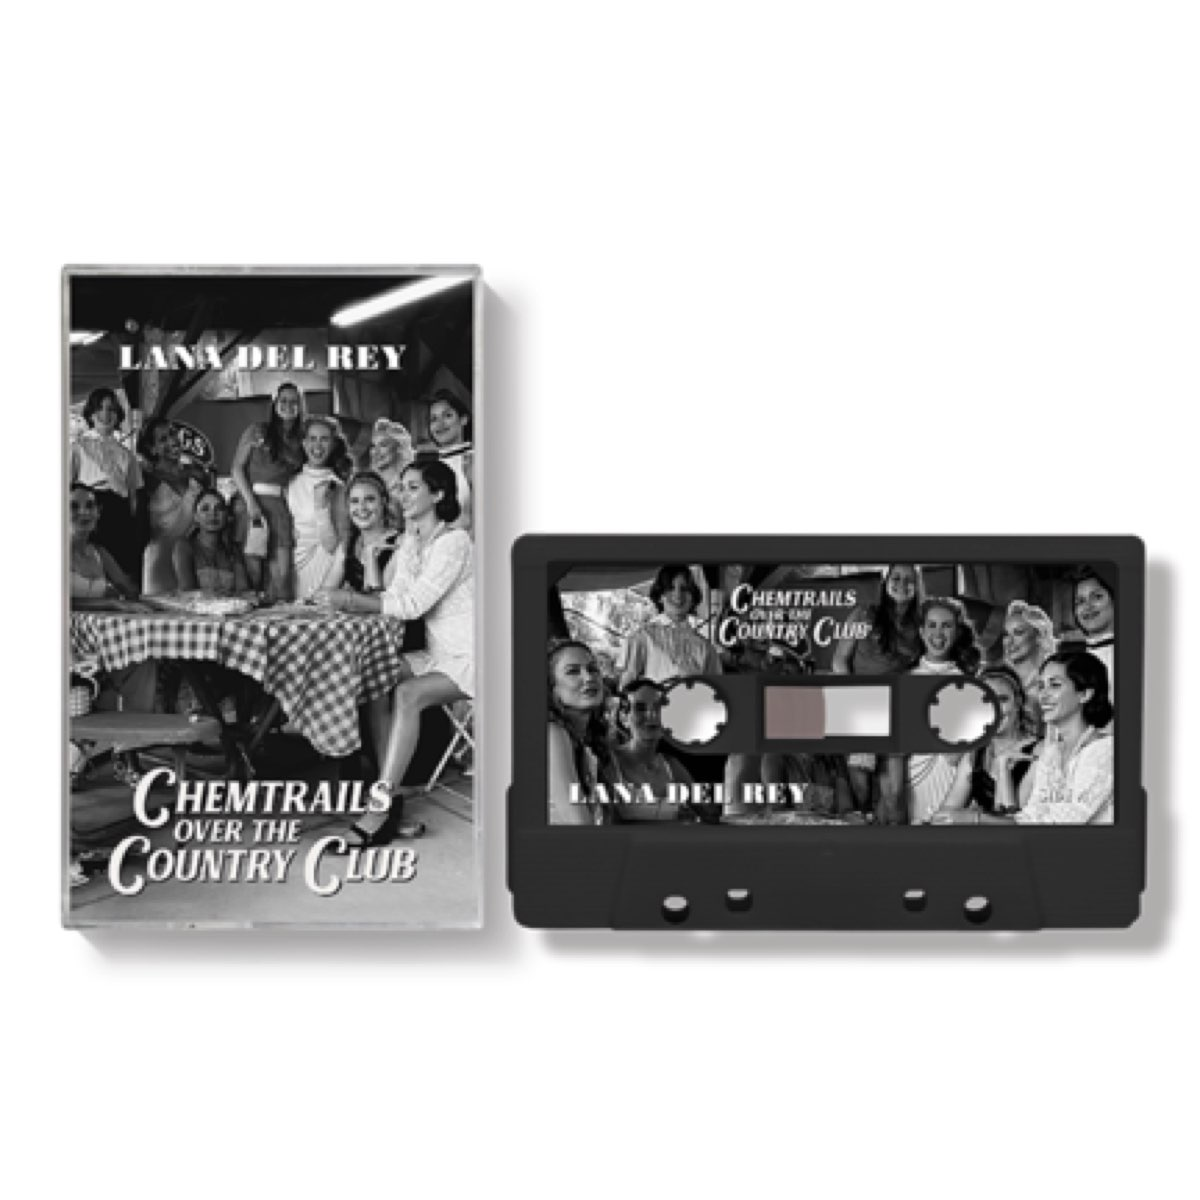 Lana Del Rey - Chemtrails Over The Country Club Cassette #1 [Limited Edition]